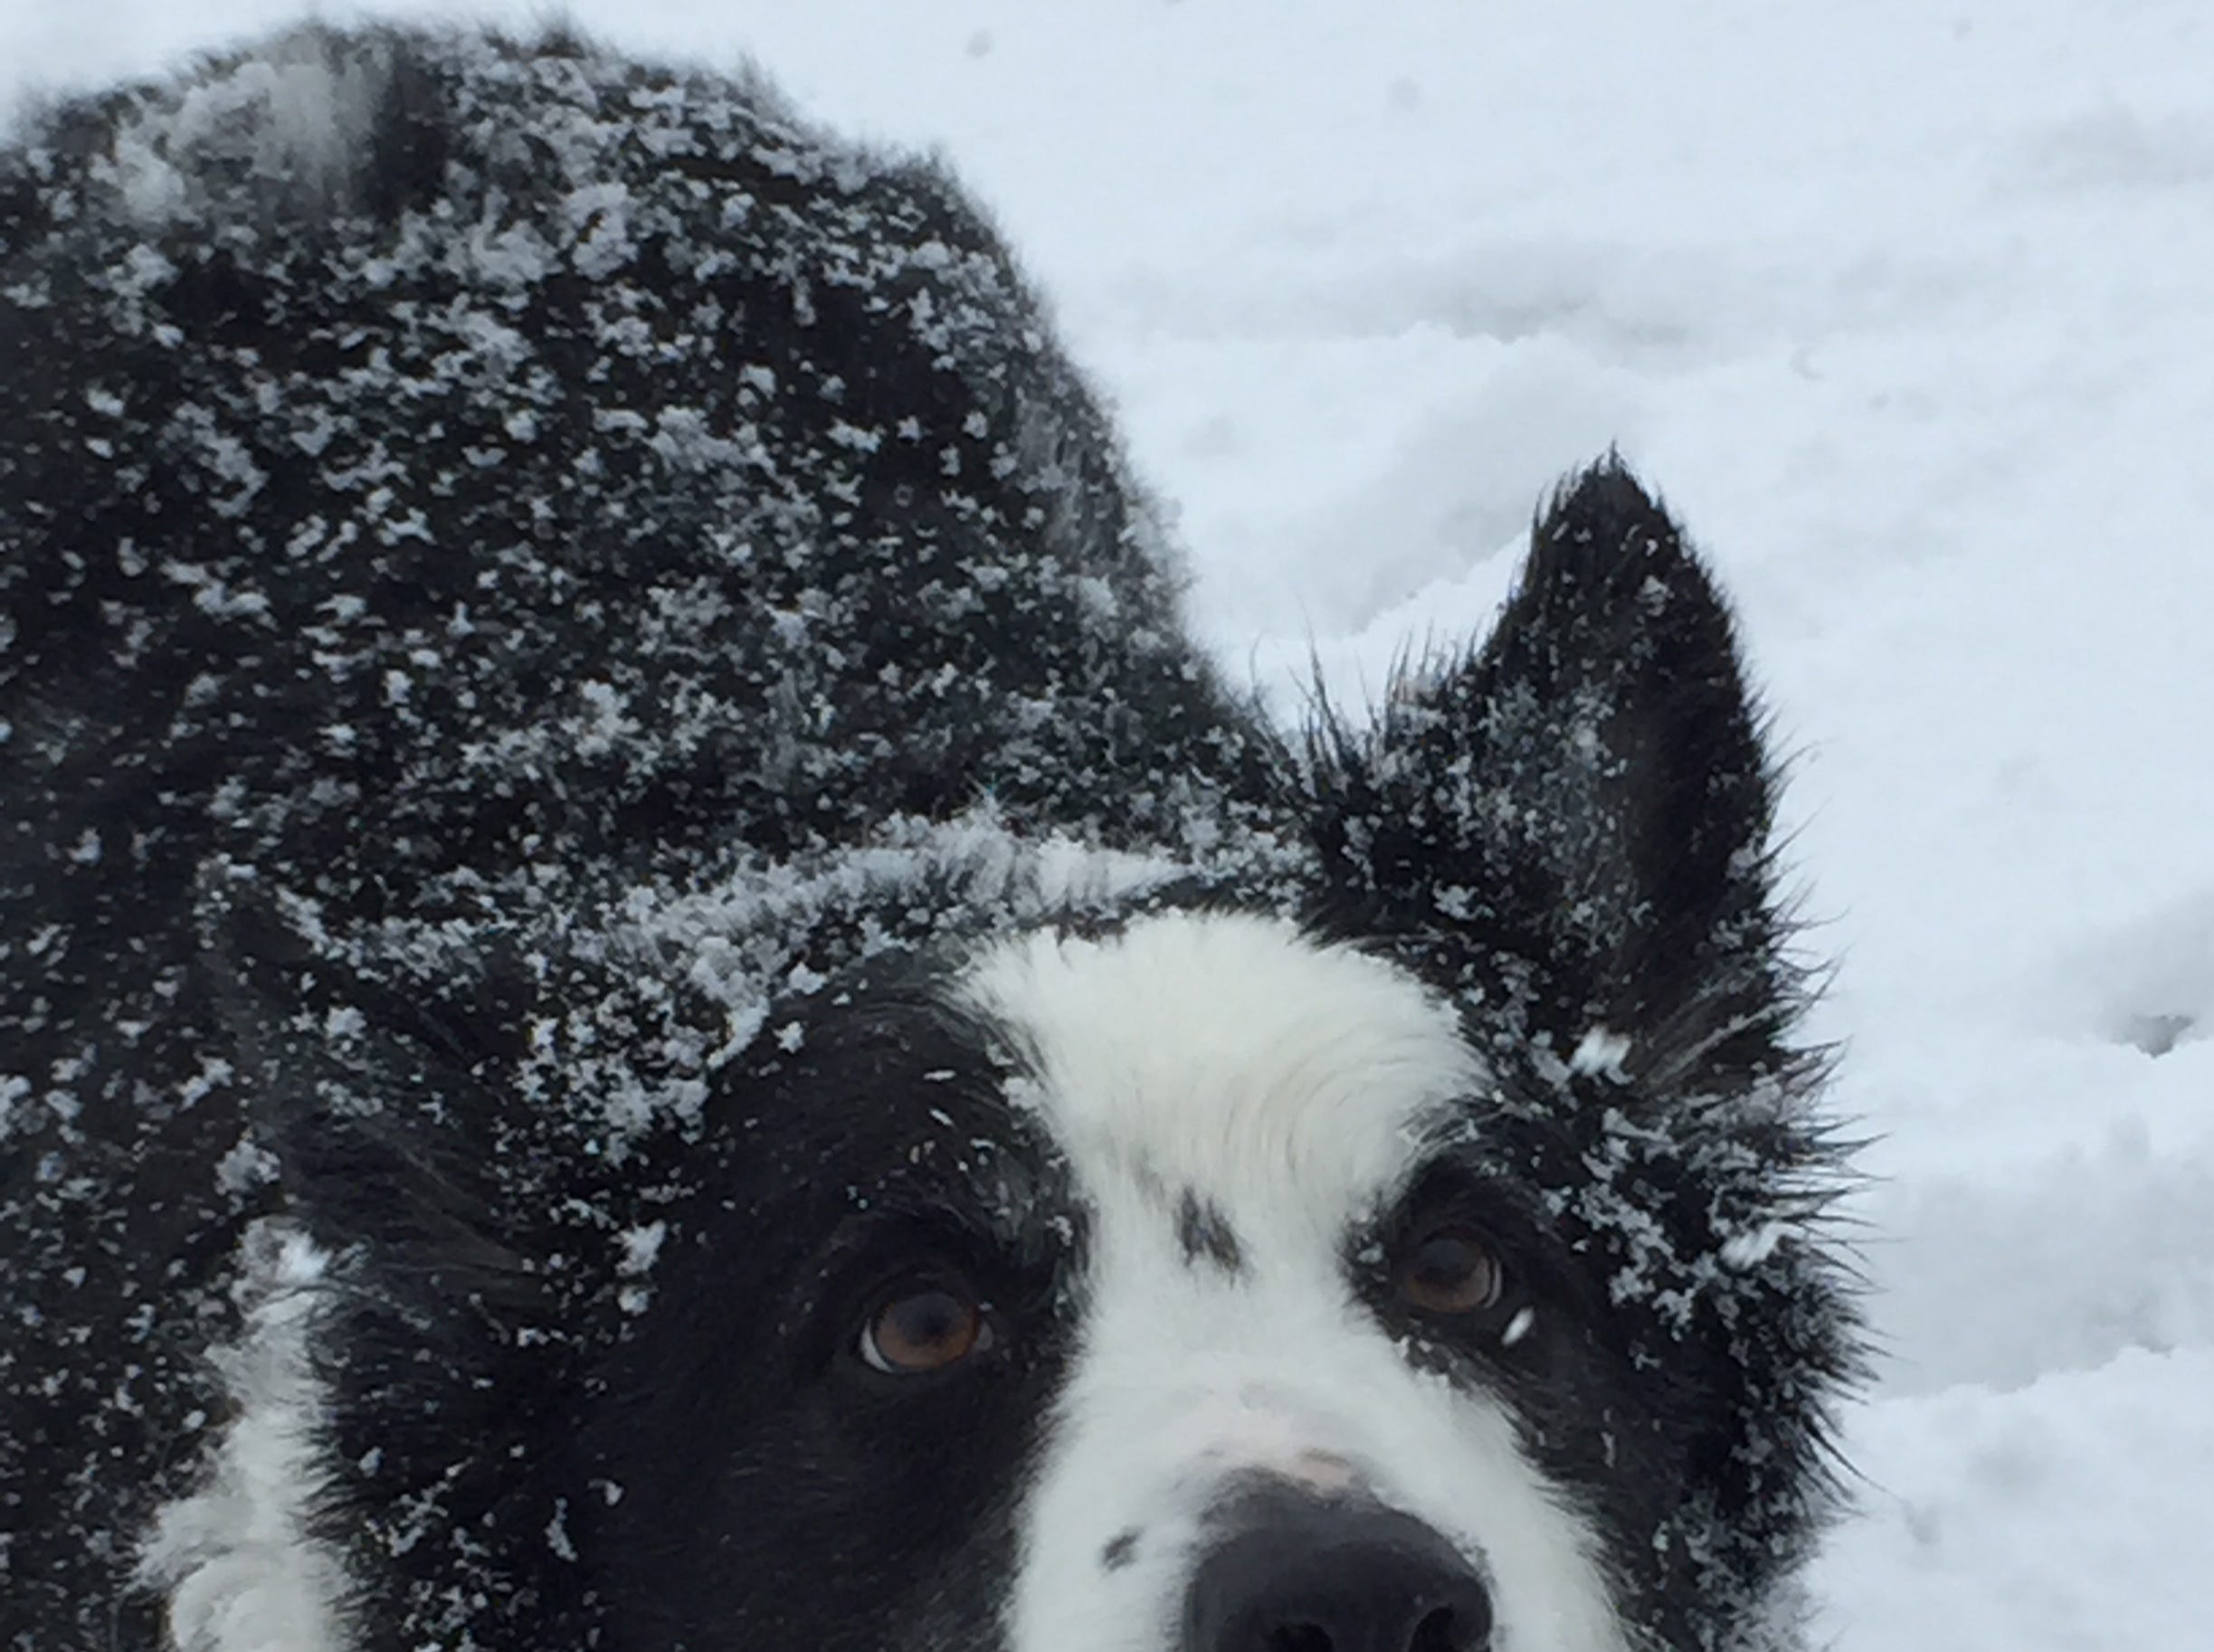 Cold temperatures, snow and sleet can't dampen the enthusiasm for winter of editor Colleen Kottke's border collie, Jack.